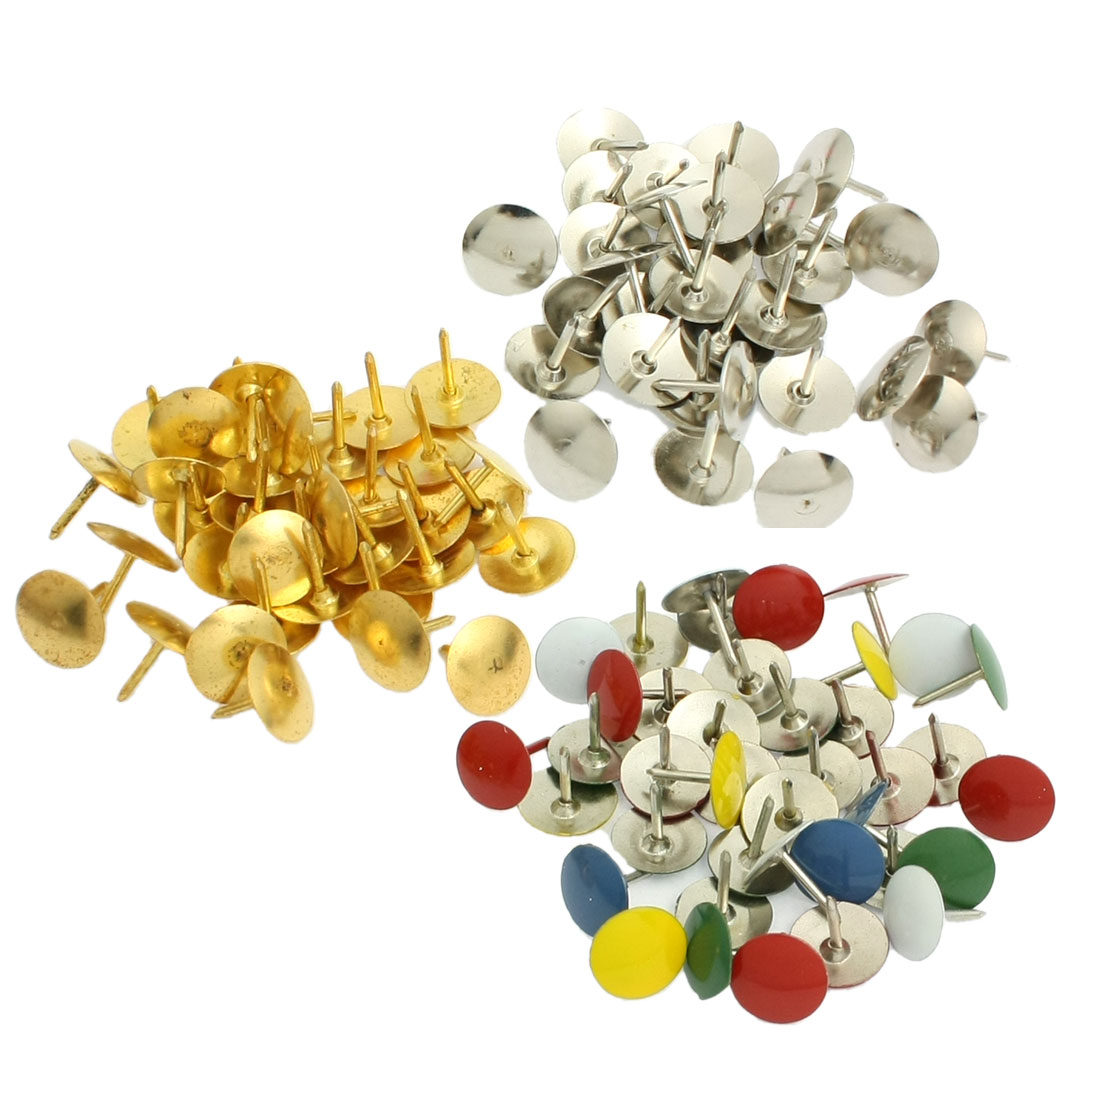 Metal Round Head Corkboard Photo Push Pins Thumb Tacks Multicolor 90 Pcs